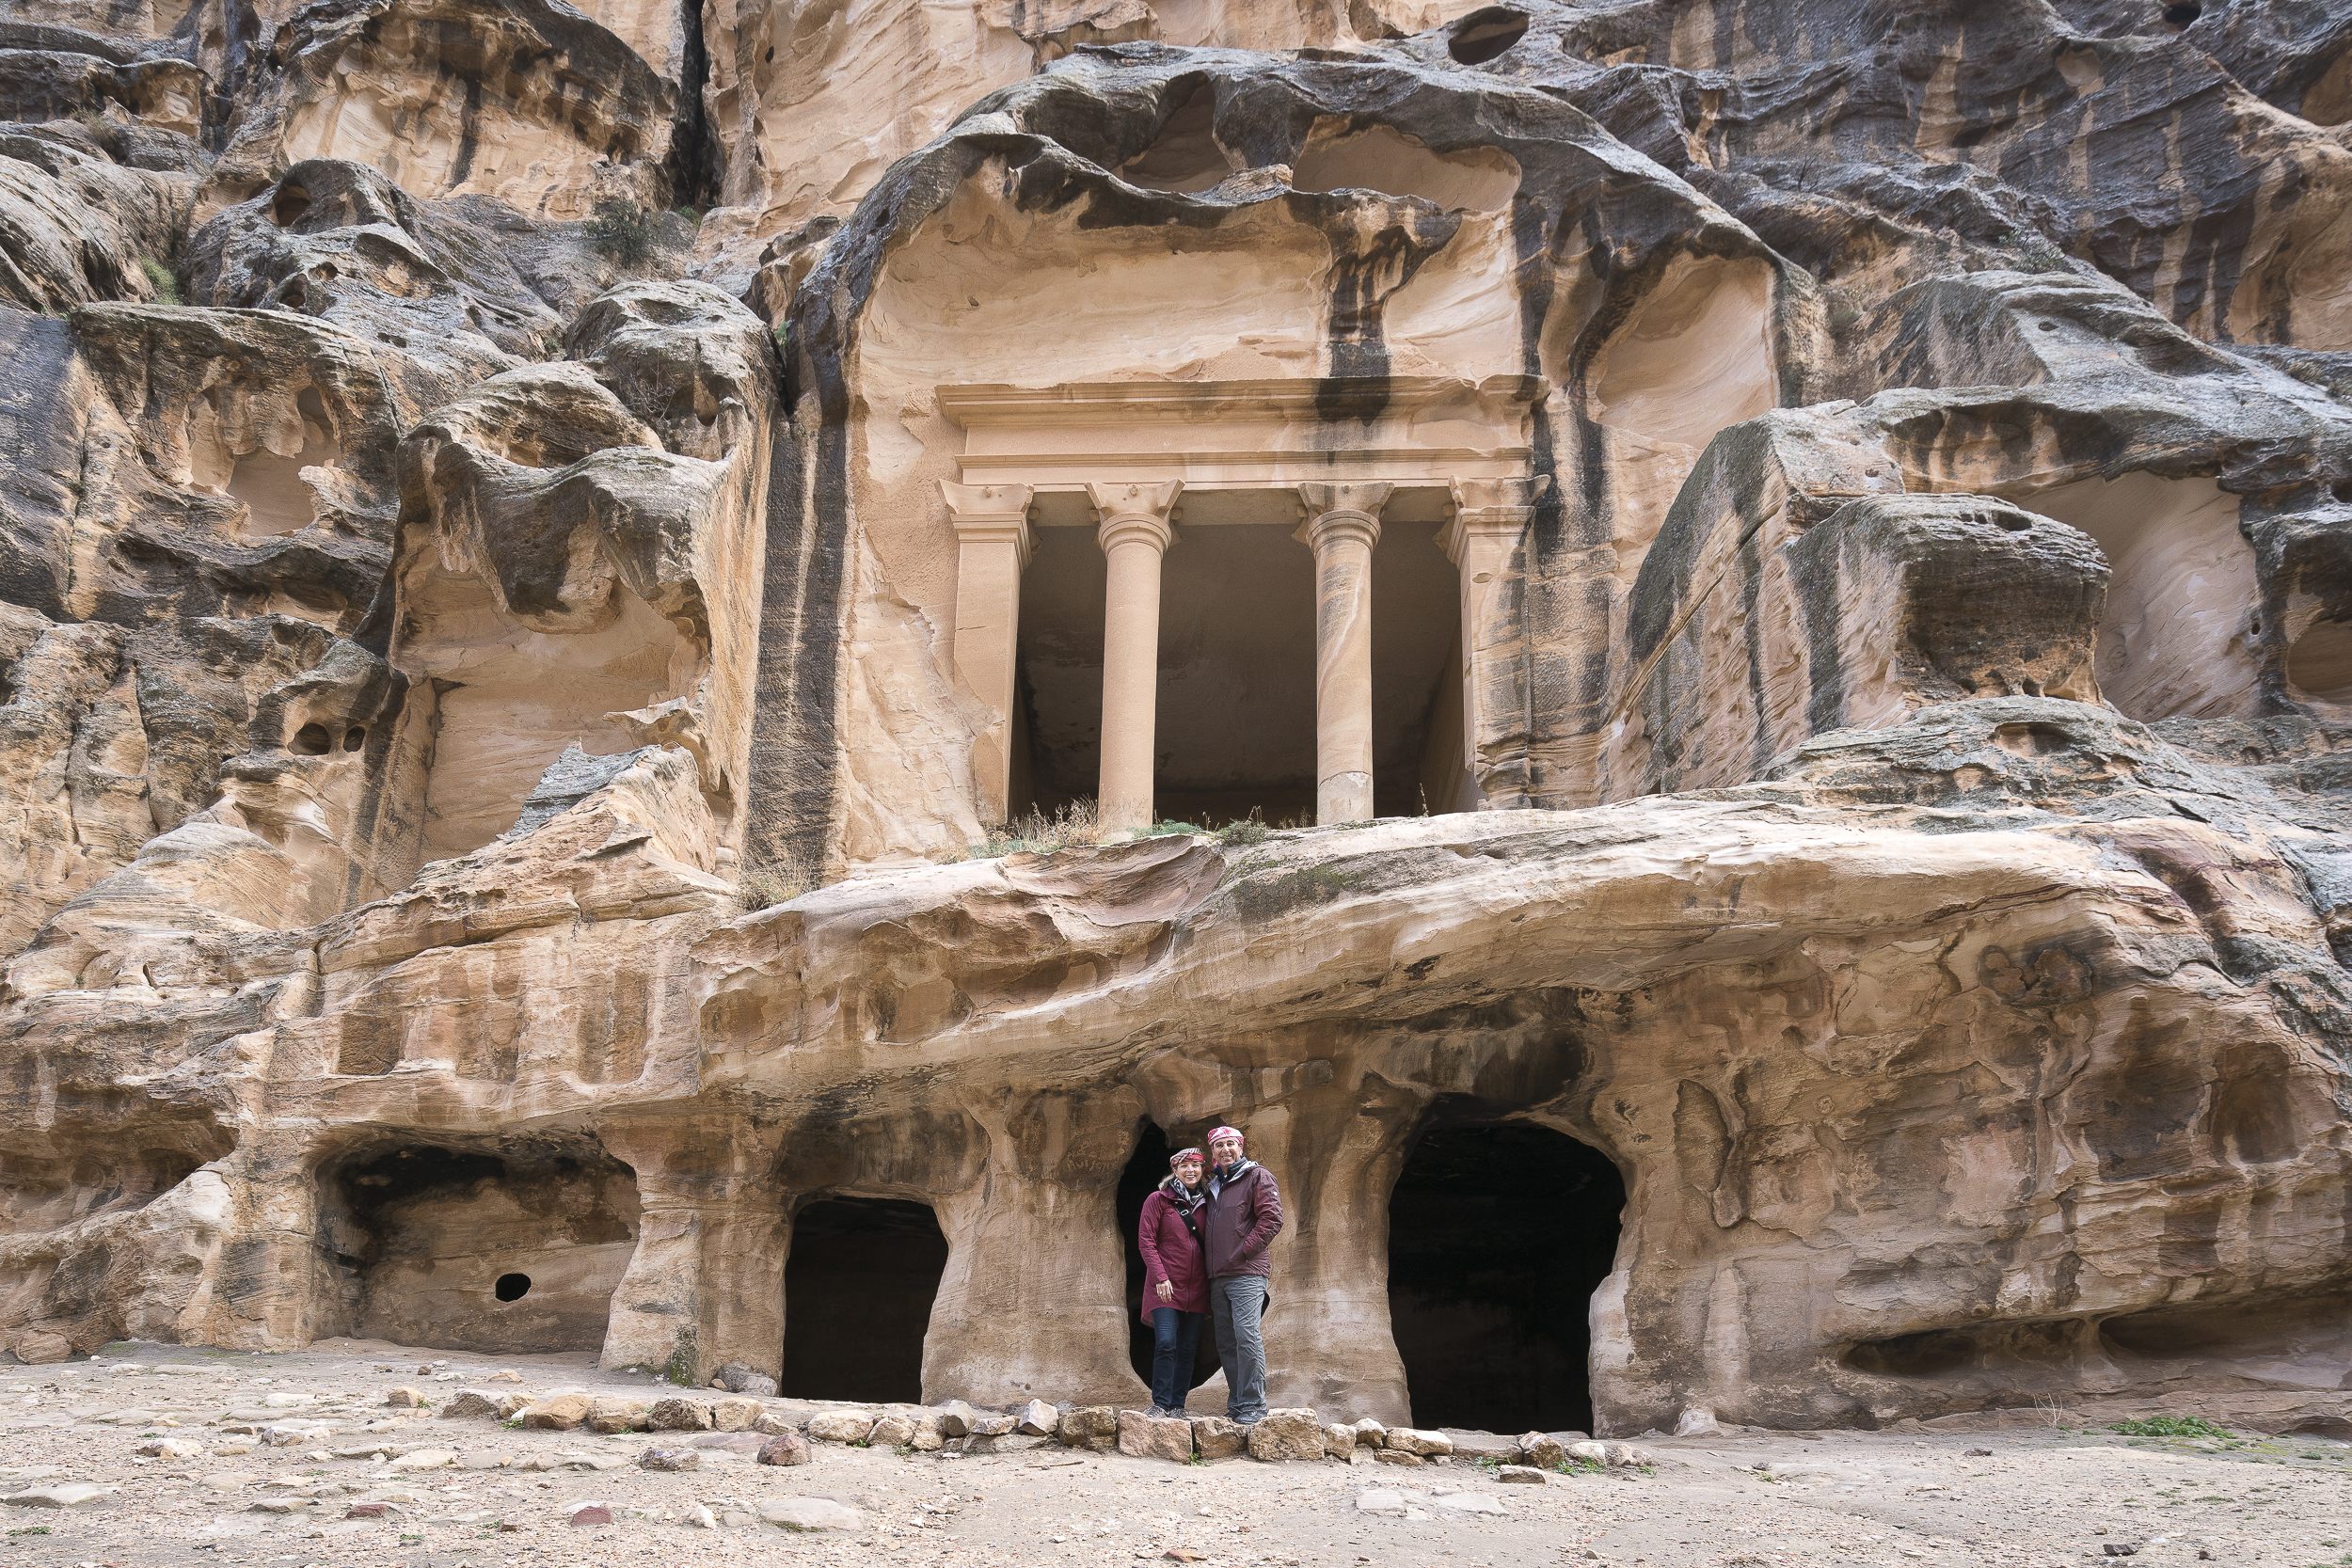 One of the many sites of Little Petra